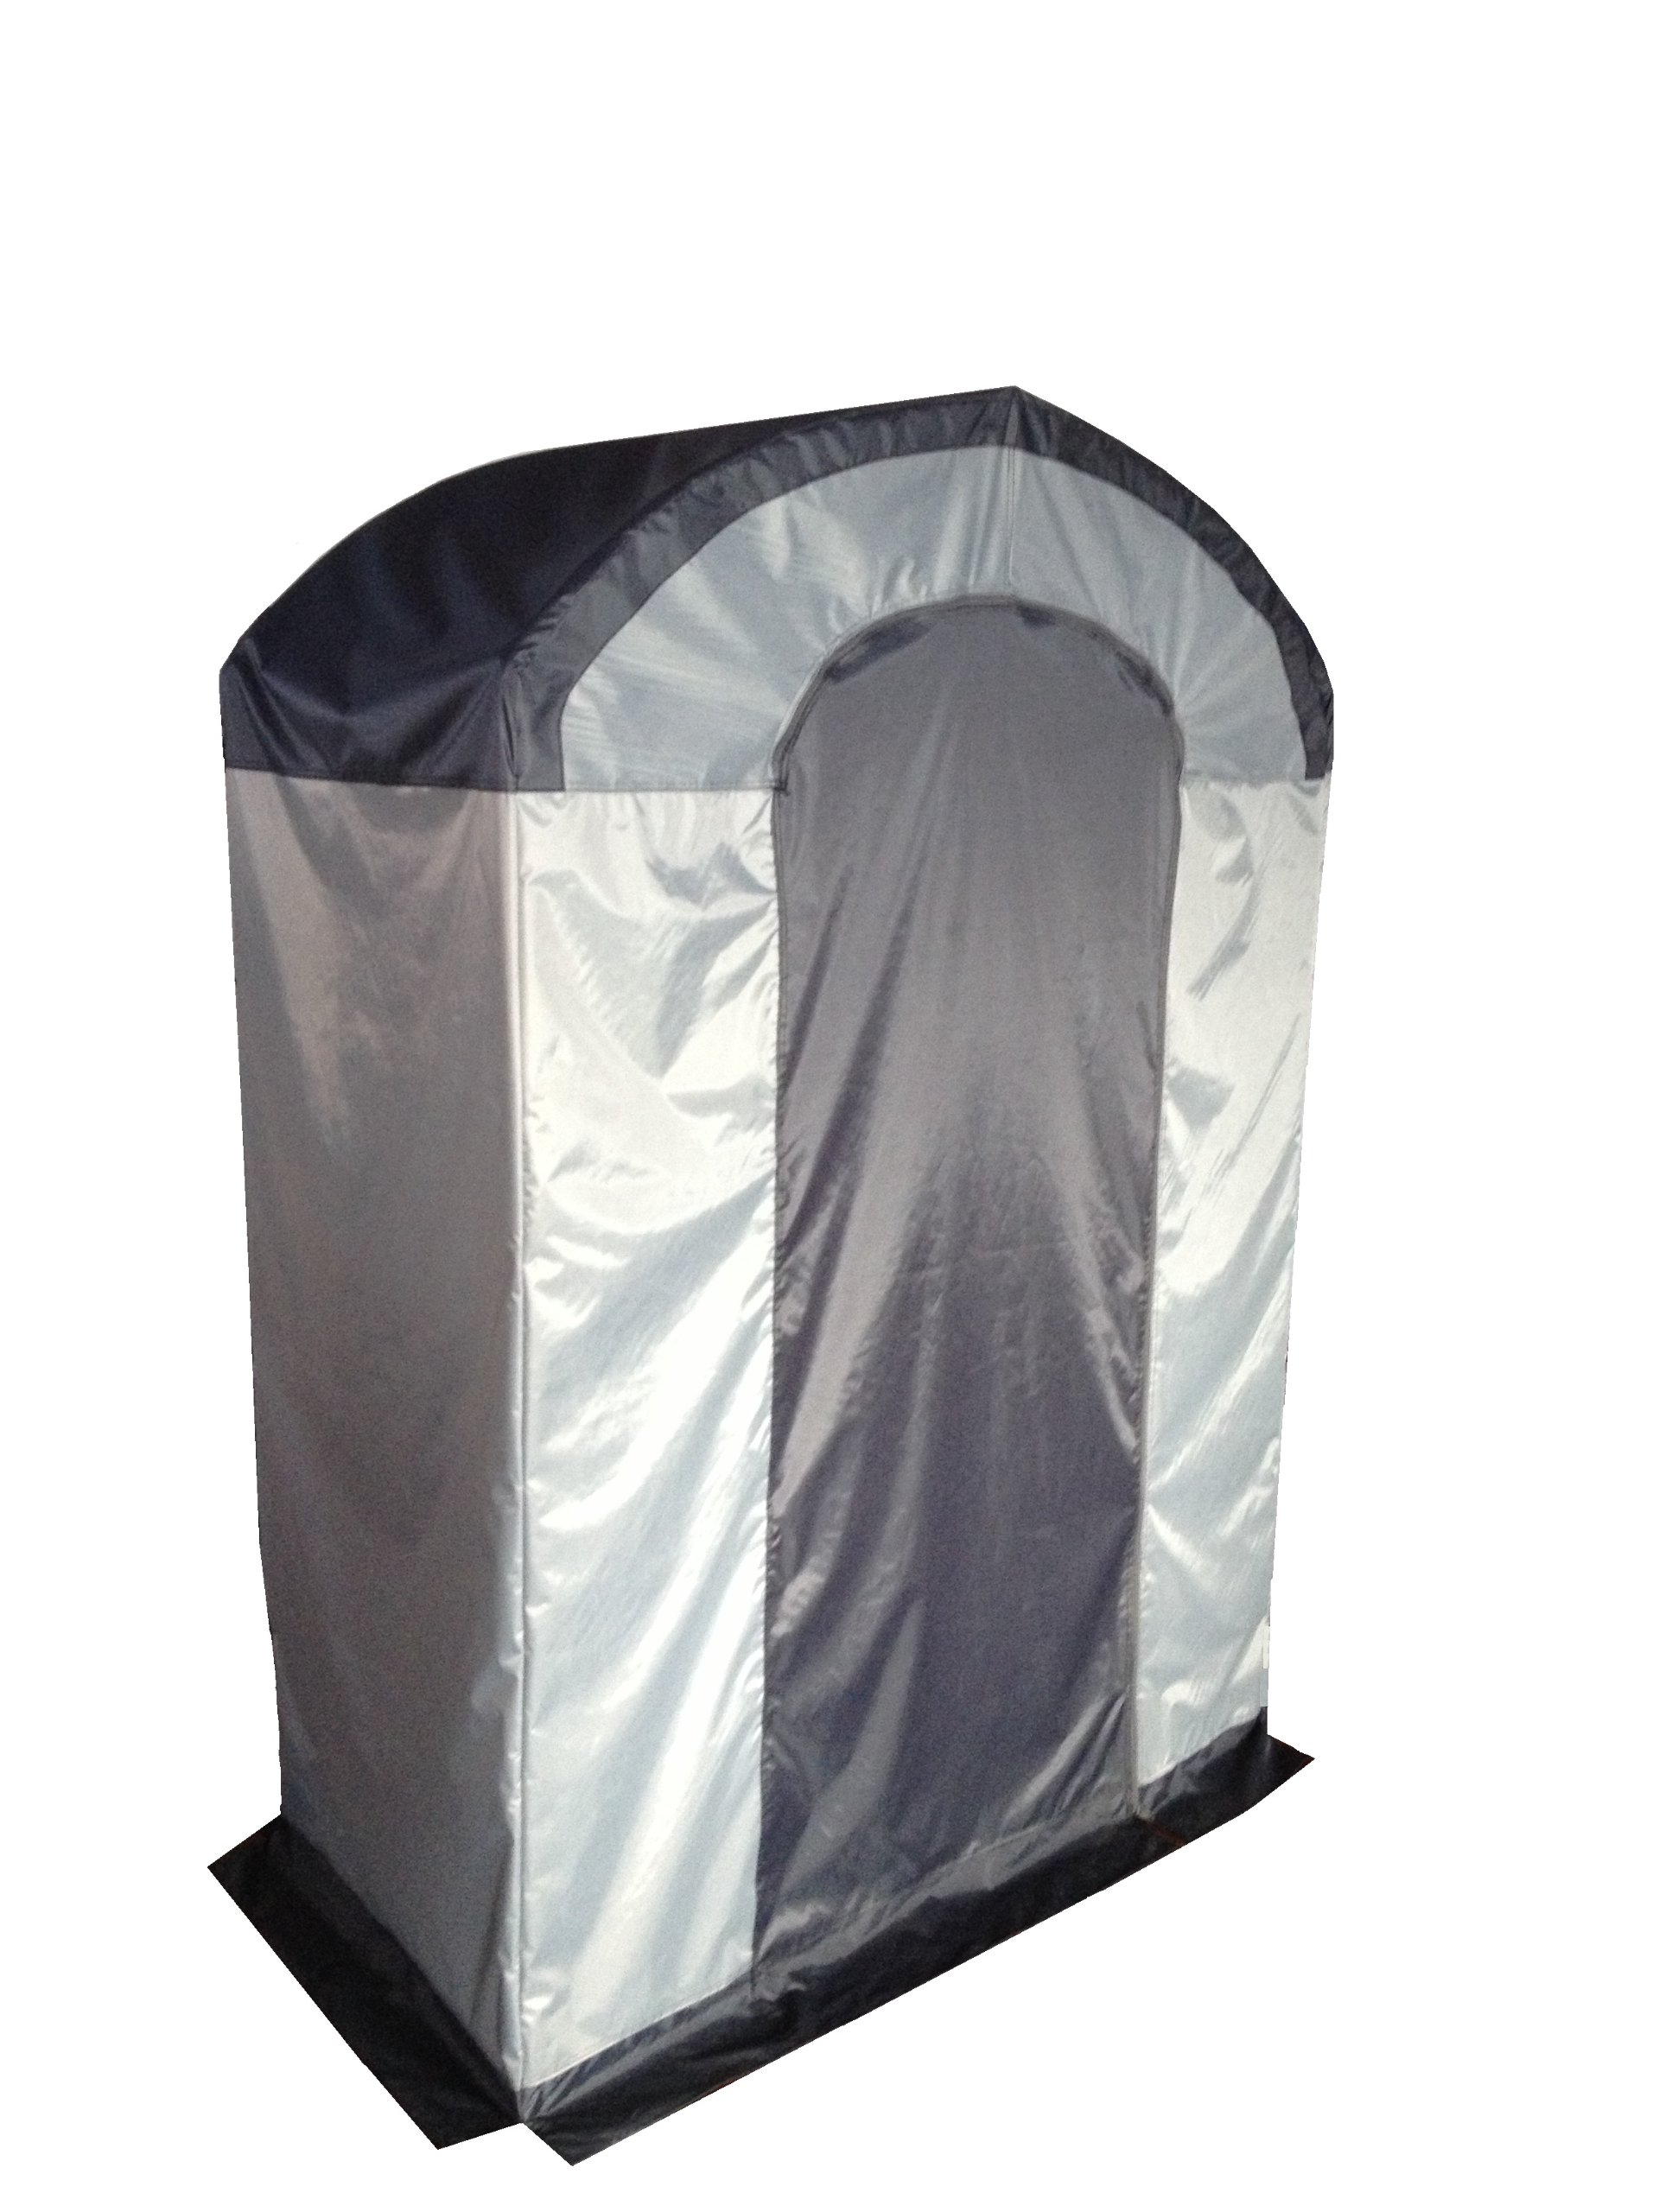 Flower House FHXUPL-SC Storage/Flower Forcer Cover for Harvest Greenhouse, X-Up Plus